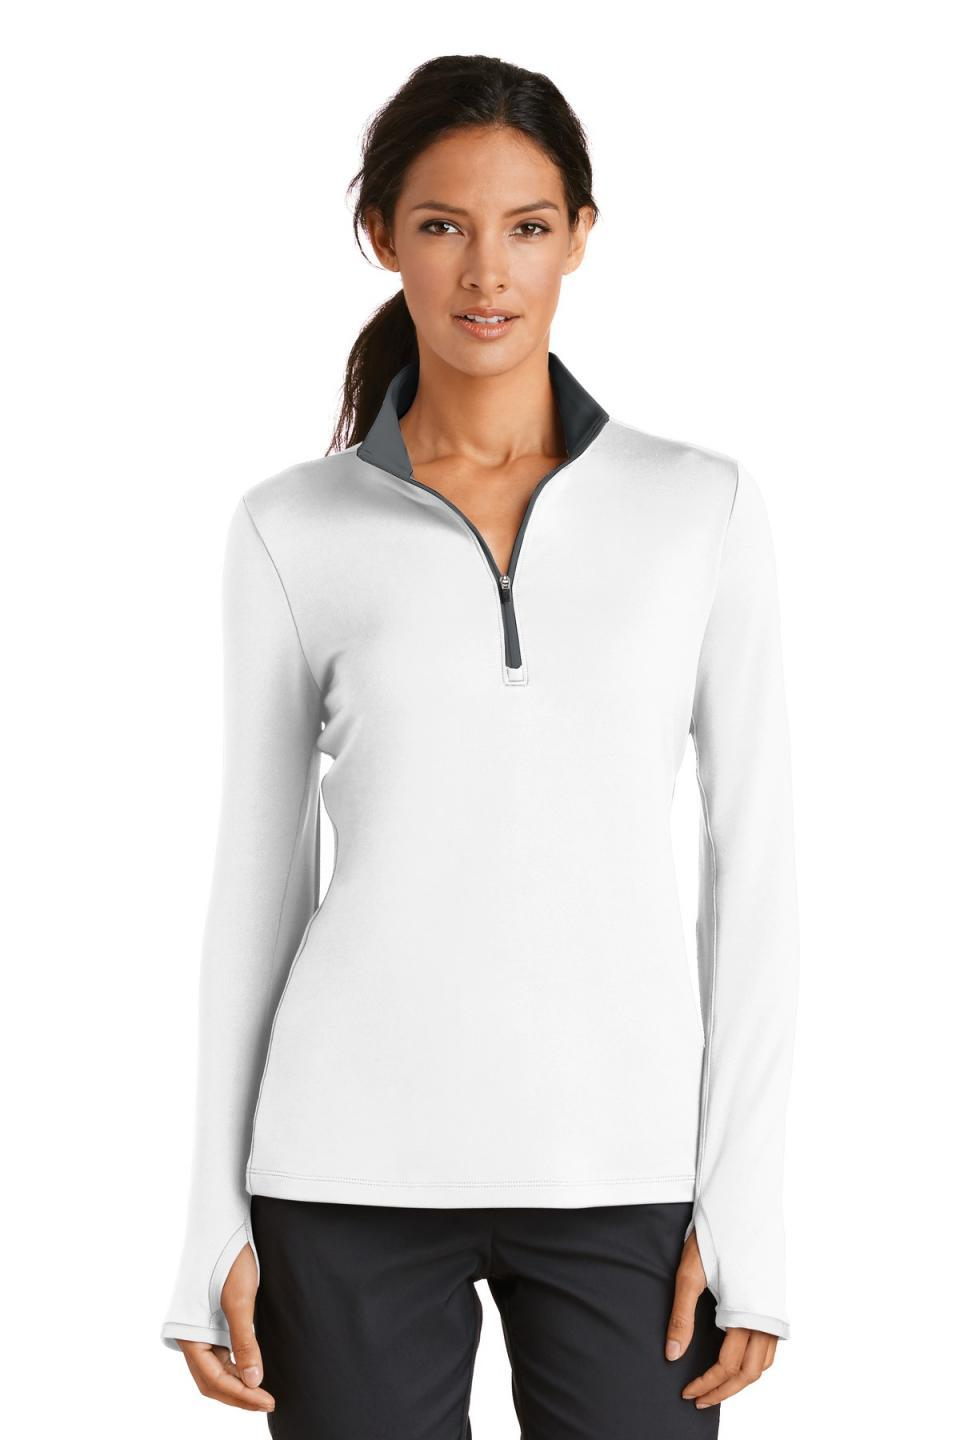 Nike Women's Dri-FIT Stretch 1/2-Zip Cover-Up